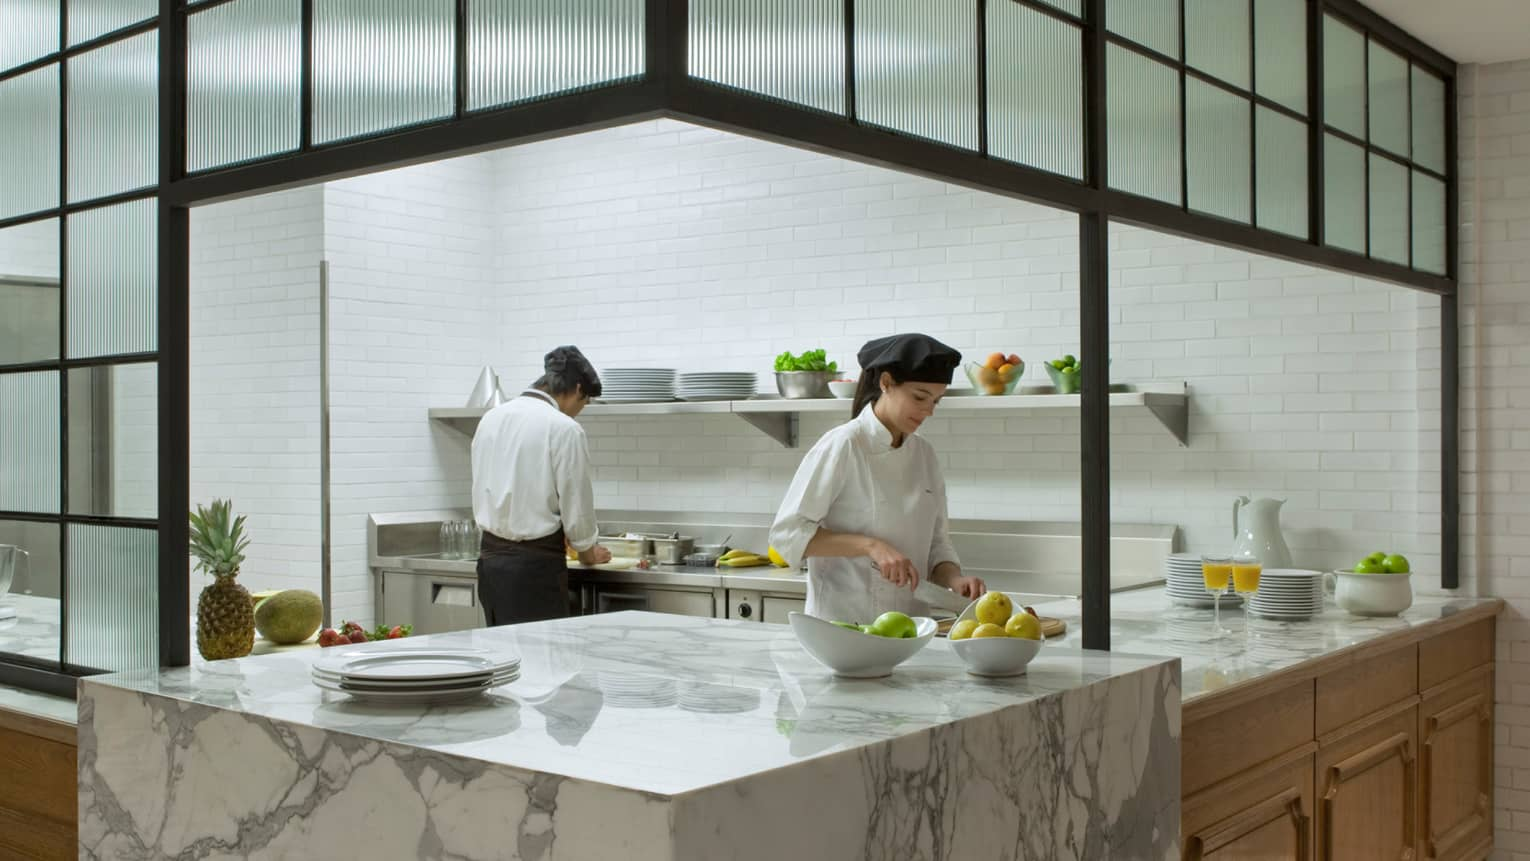 Two chefs work behind large grey-and-white marble counter with bowls of fresh apples, orange juice in glasses